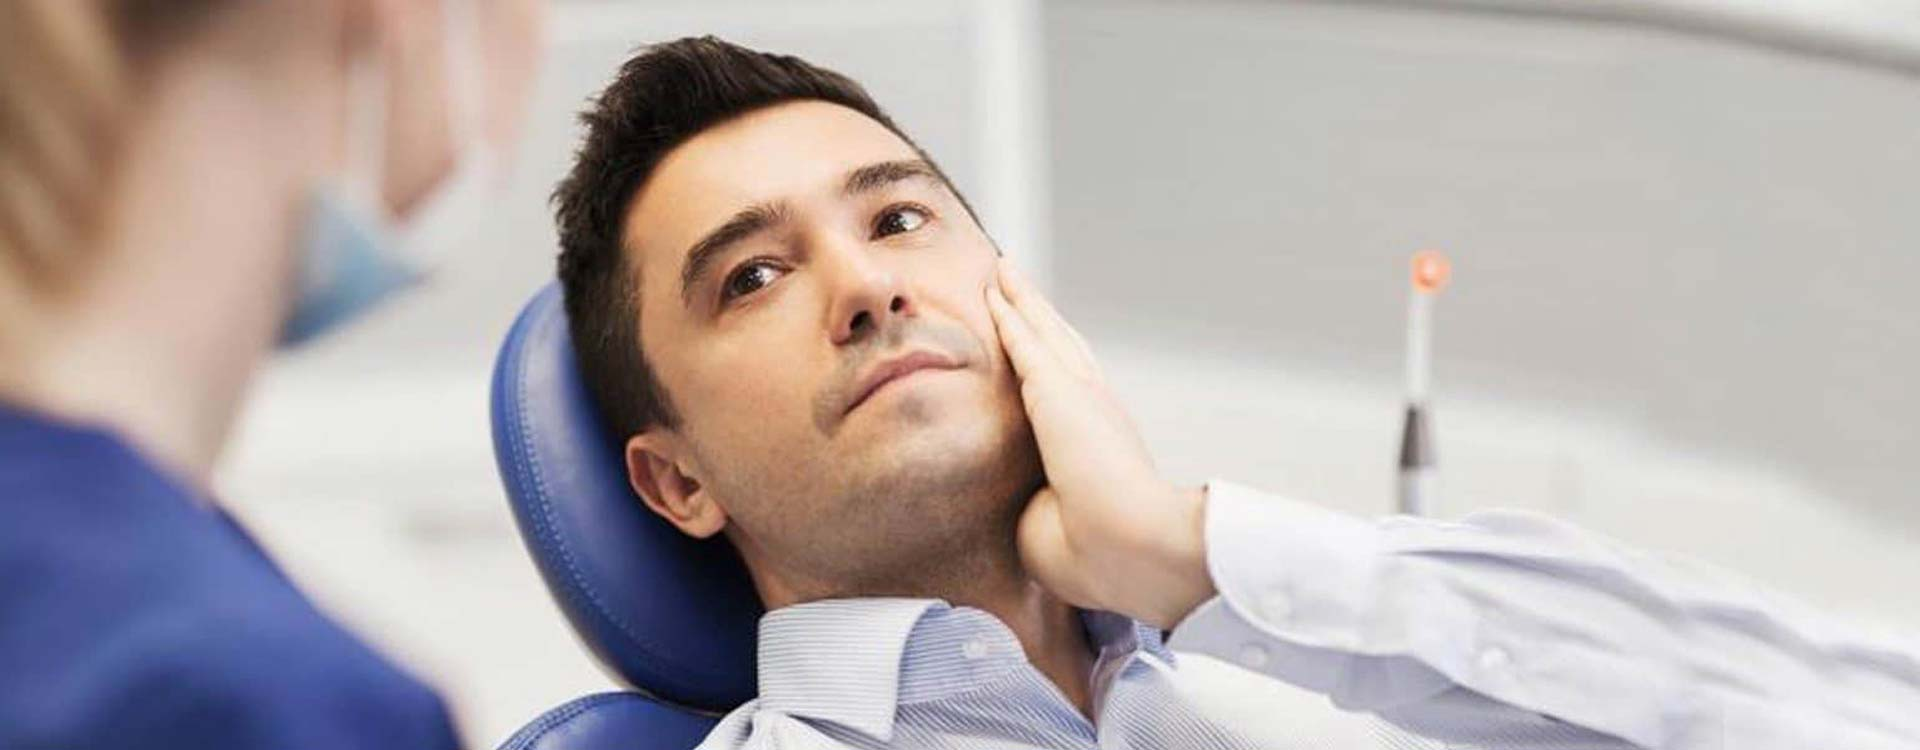 Get the Best Dental Services from an Emergency Dentist